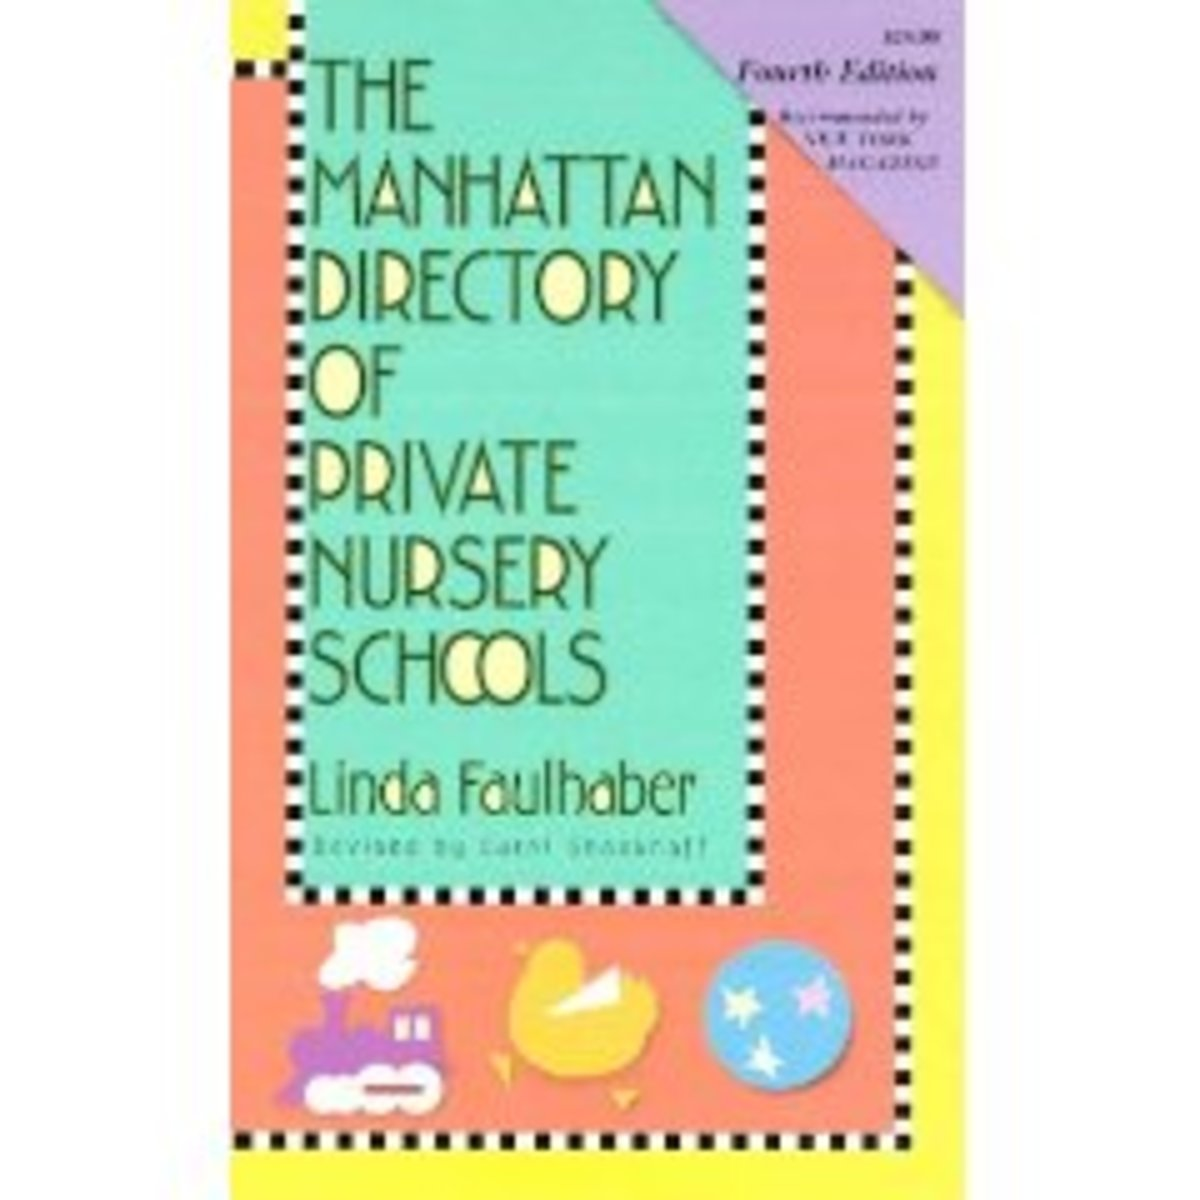 This guide for parents looking for a good private preschool in Manhattan, is like a sacred text to those wanting their children placed in the best possible nursery.